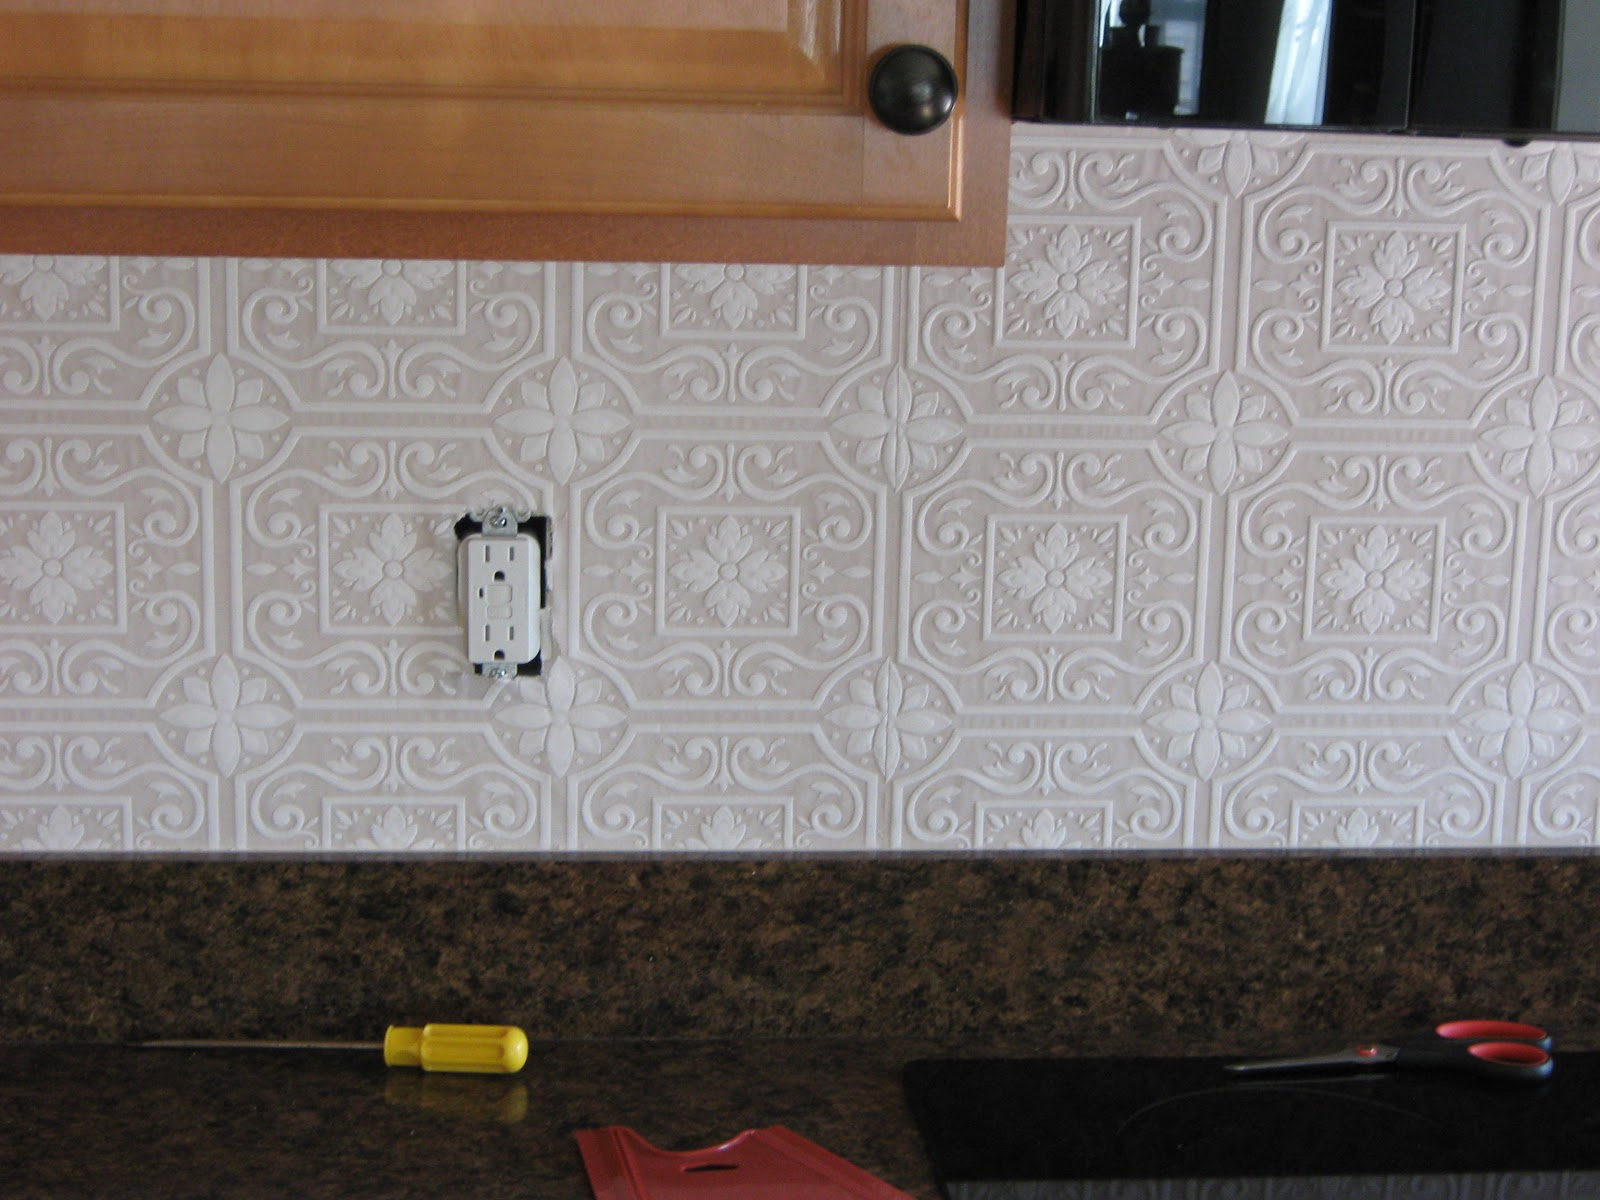 Fake-It Frugal: Fake Punched Tin Backsplash on old country kitchen ideas, beadboard kitchen ideas, wallpaper ideas for kitchen, wallpaper in kitchen, pink kitchen decorating ideas, wallpaper kitchen backsplashes, kitchen floor tile ideas, chicken kitchen ideas, kitchen wallpaper border ideas, painted kitchen cabinet ideas, wallpaper for kitchens wallcoverings, small kitchen ideas, wallpaper master bedroom ideas, wallpaper for small kitchen, kitchen color ideas, wallpaper kitchen cabinets, kitchen wall ideas, contemporary kitchen wallpaper ideas, wallpaper kitchen decor, kitchen backdrop ideas,